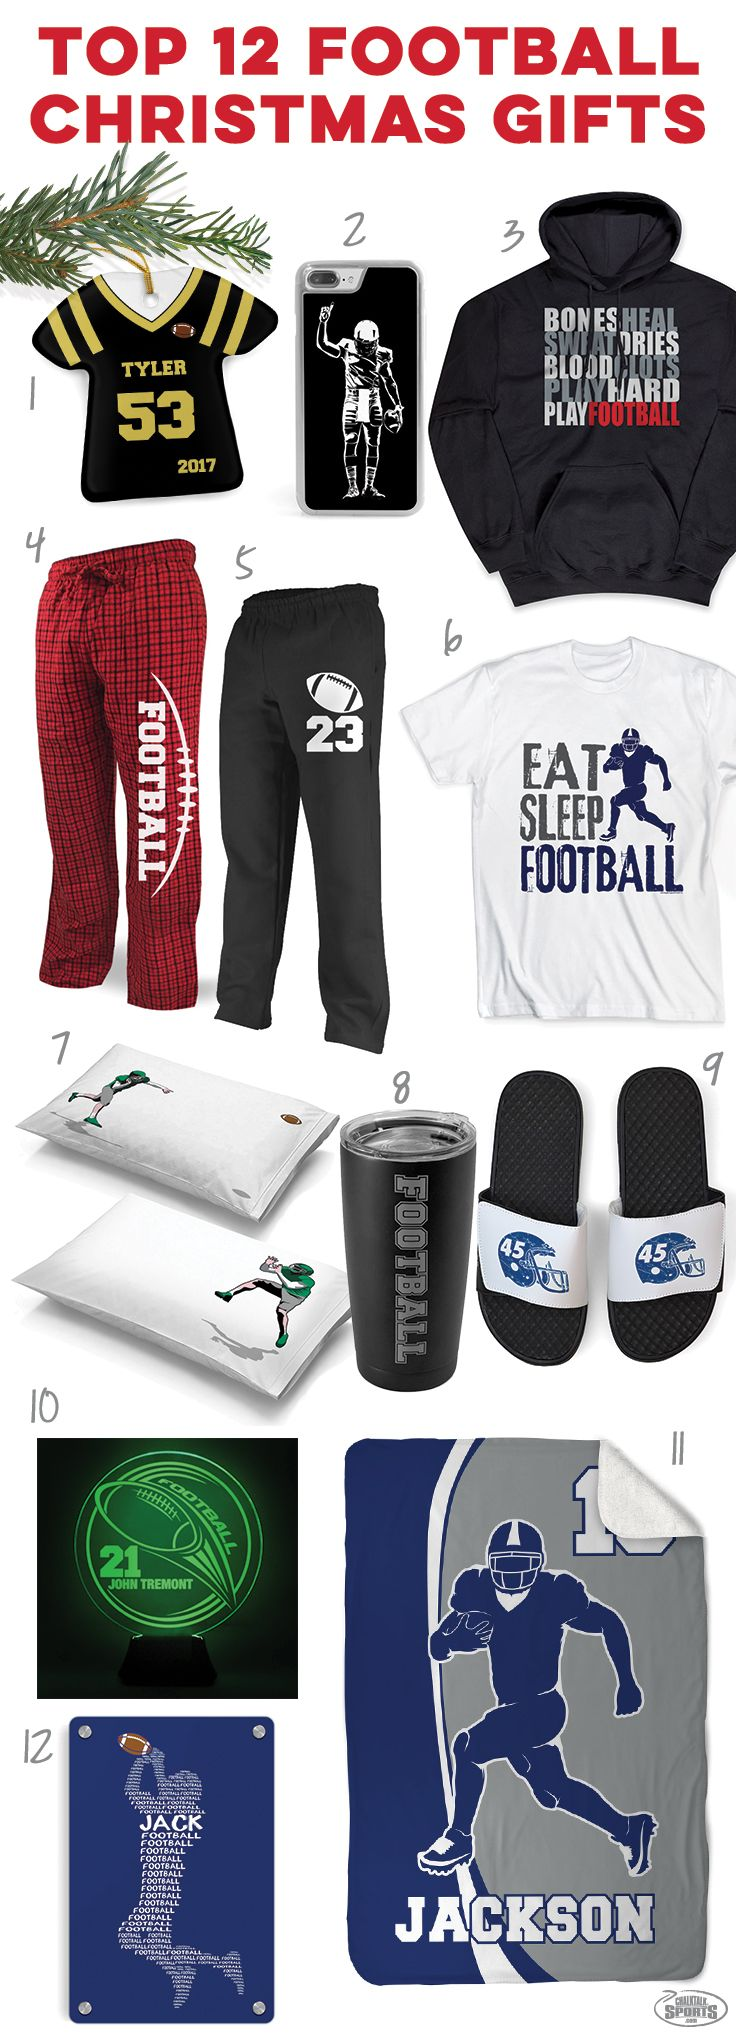 Check out these great holiday football gift ideas! Click to see more details on our top 12 football player gift ideas. Unique football Christmas gifts you can't find anywhere else!